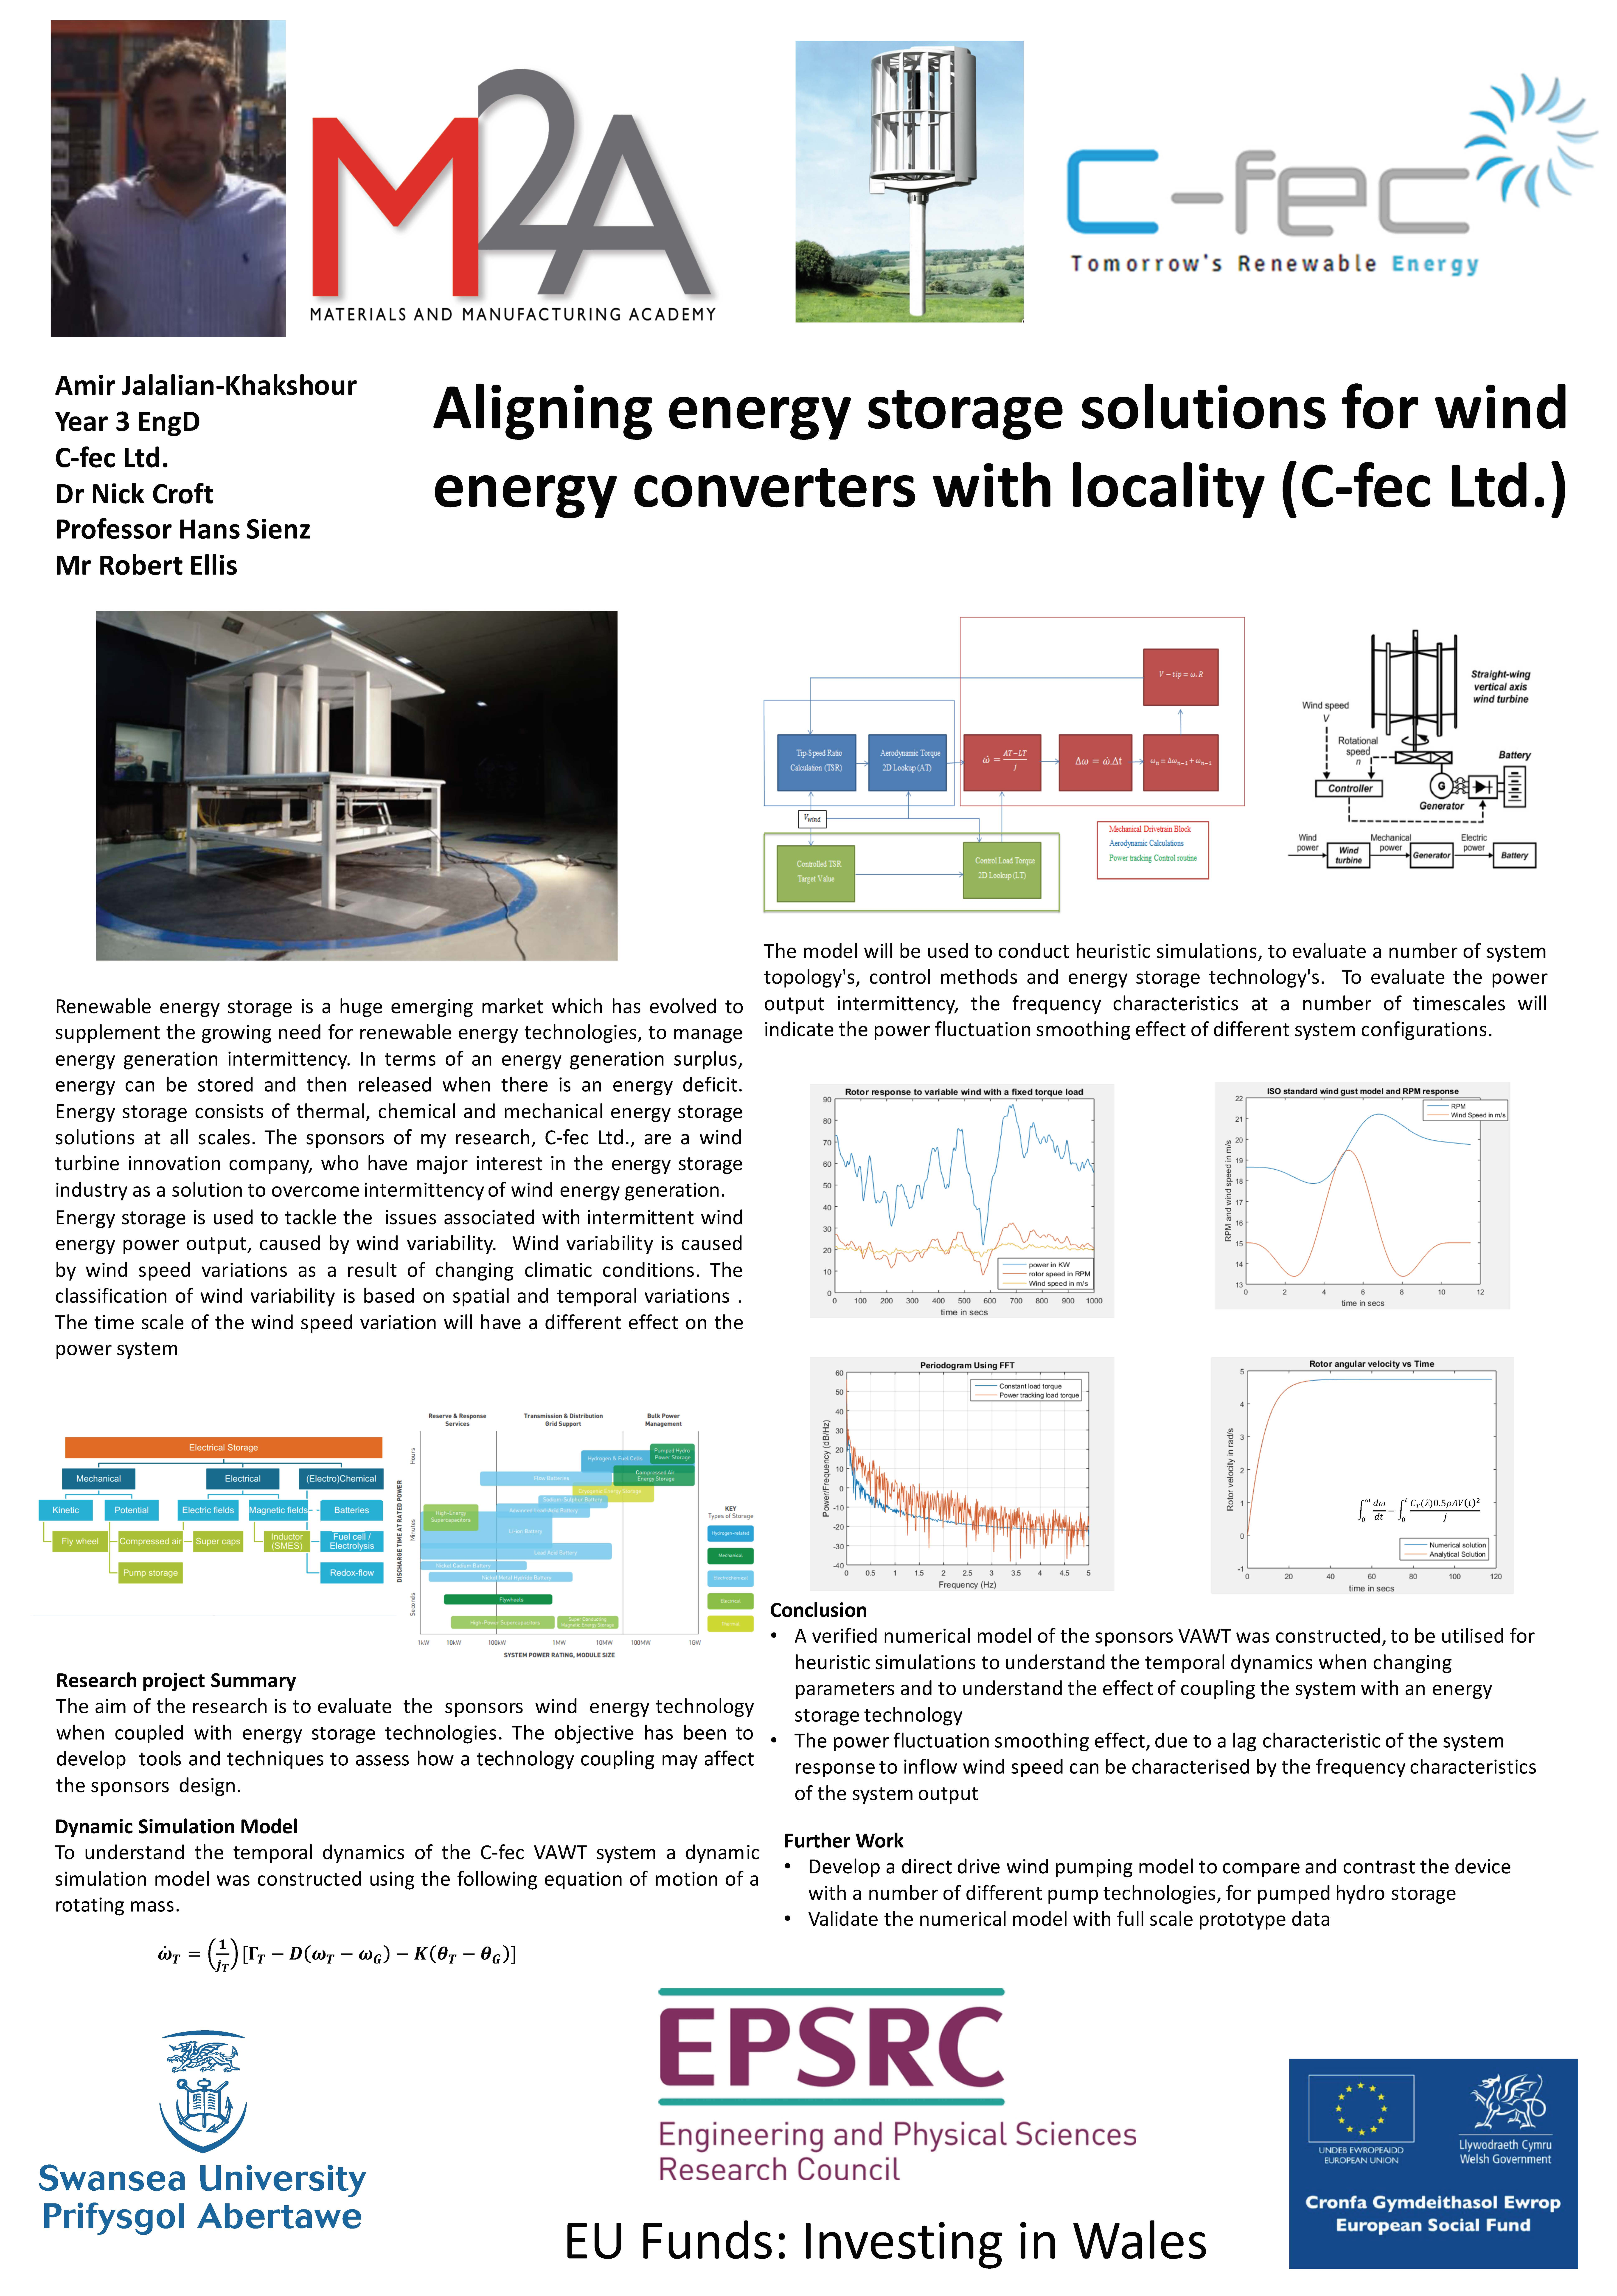 Aligning energy storage solutions for wind energy converters with locality (C-fec Ltd.)